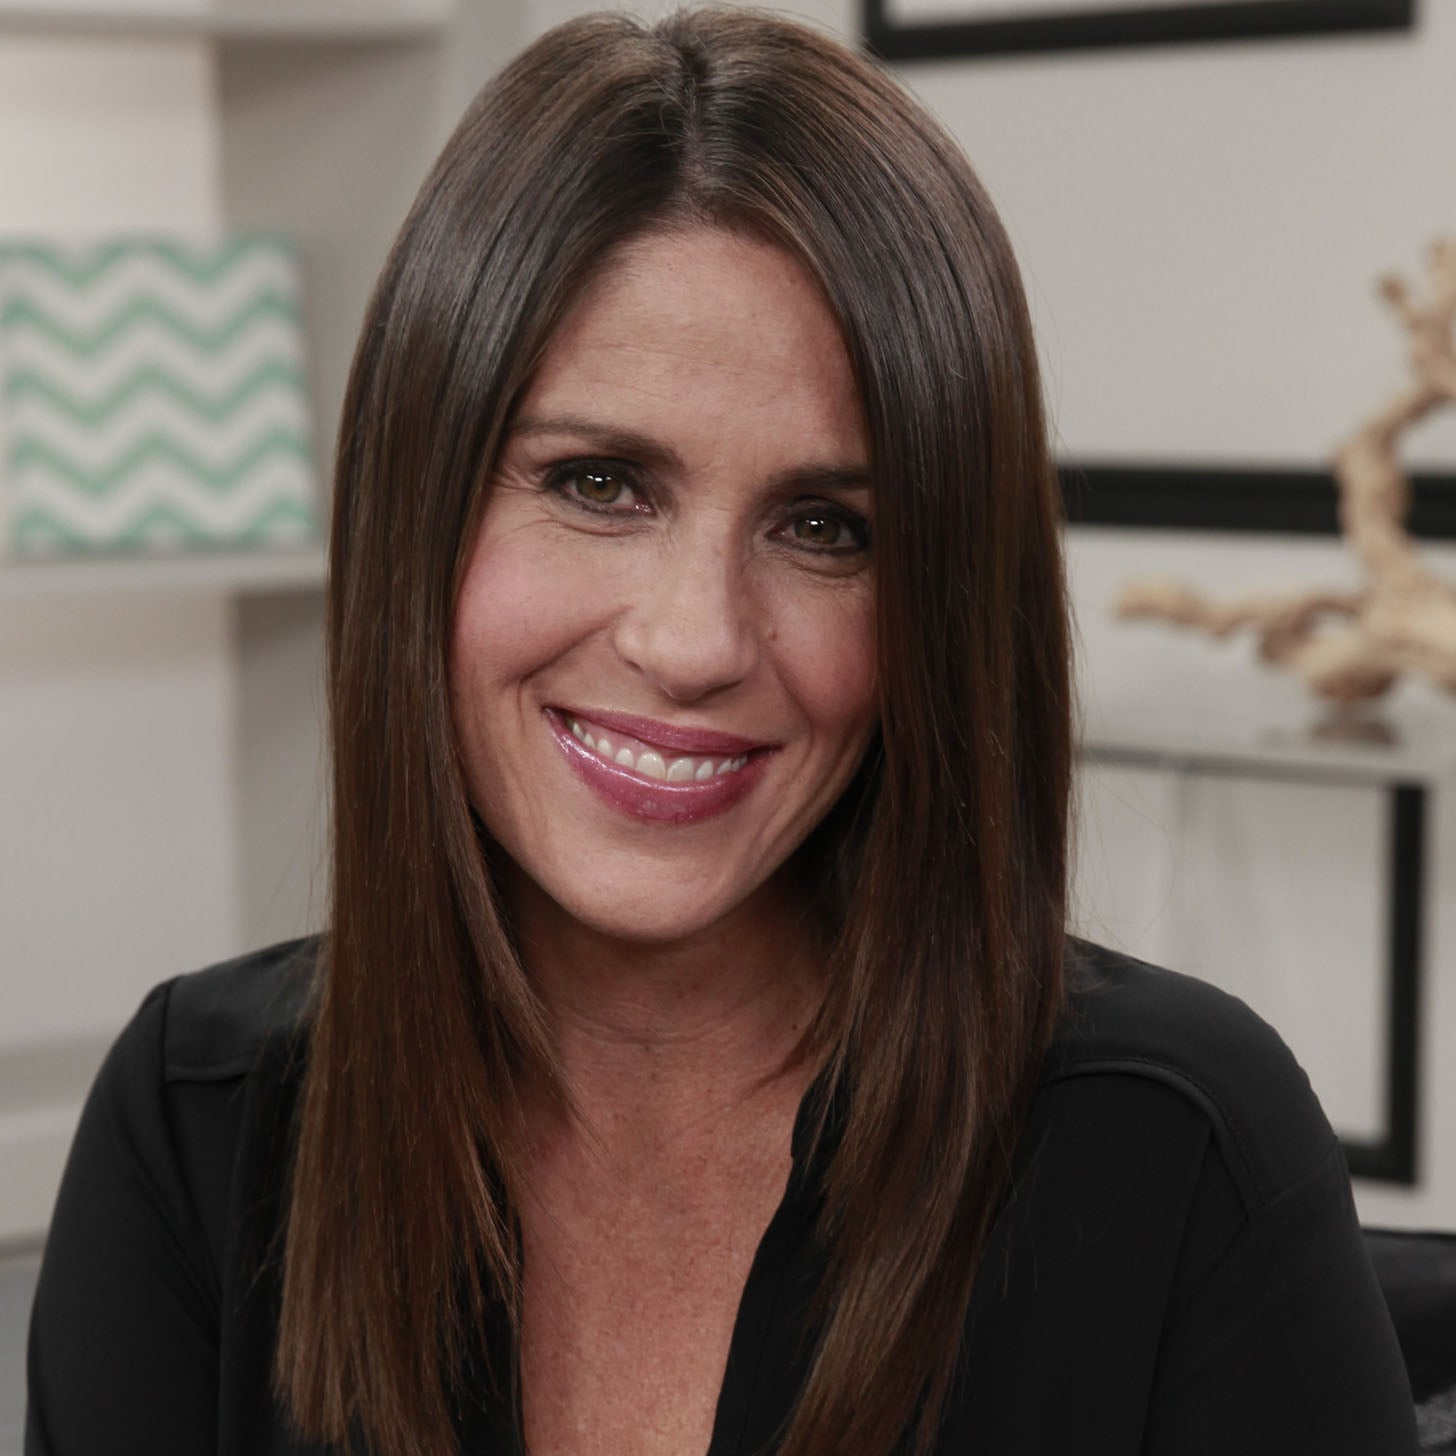 Video Soleil Moon Frye naked (95 photo), Topless, Is a cute, Boobs, lingerie 2020